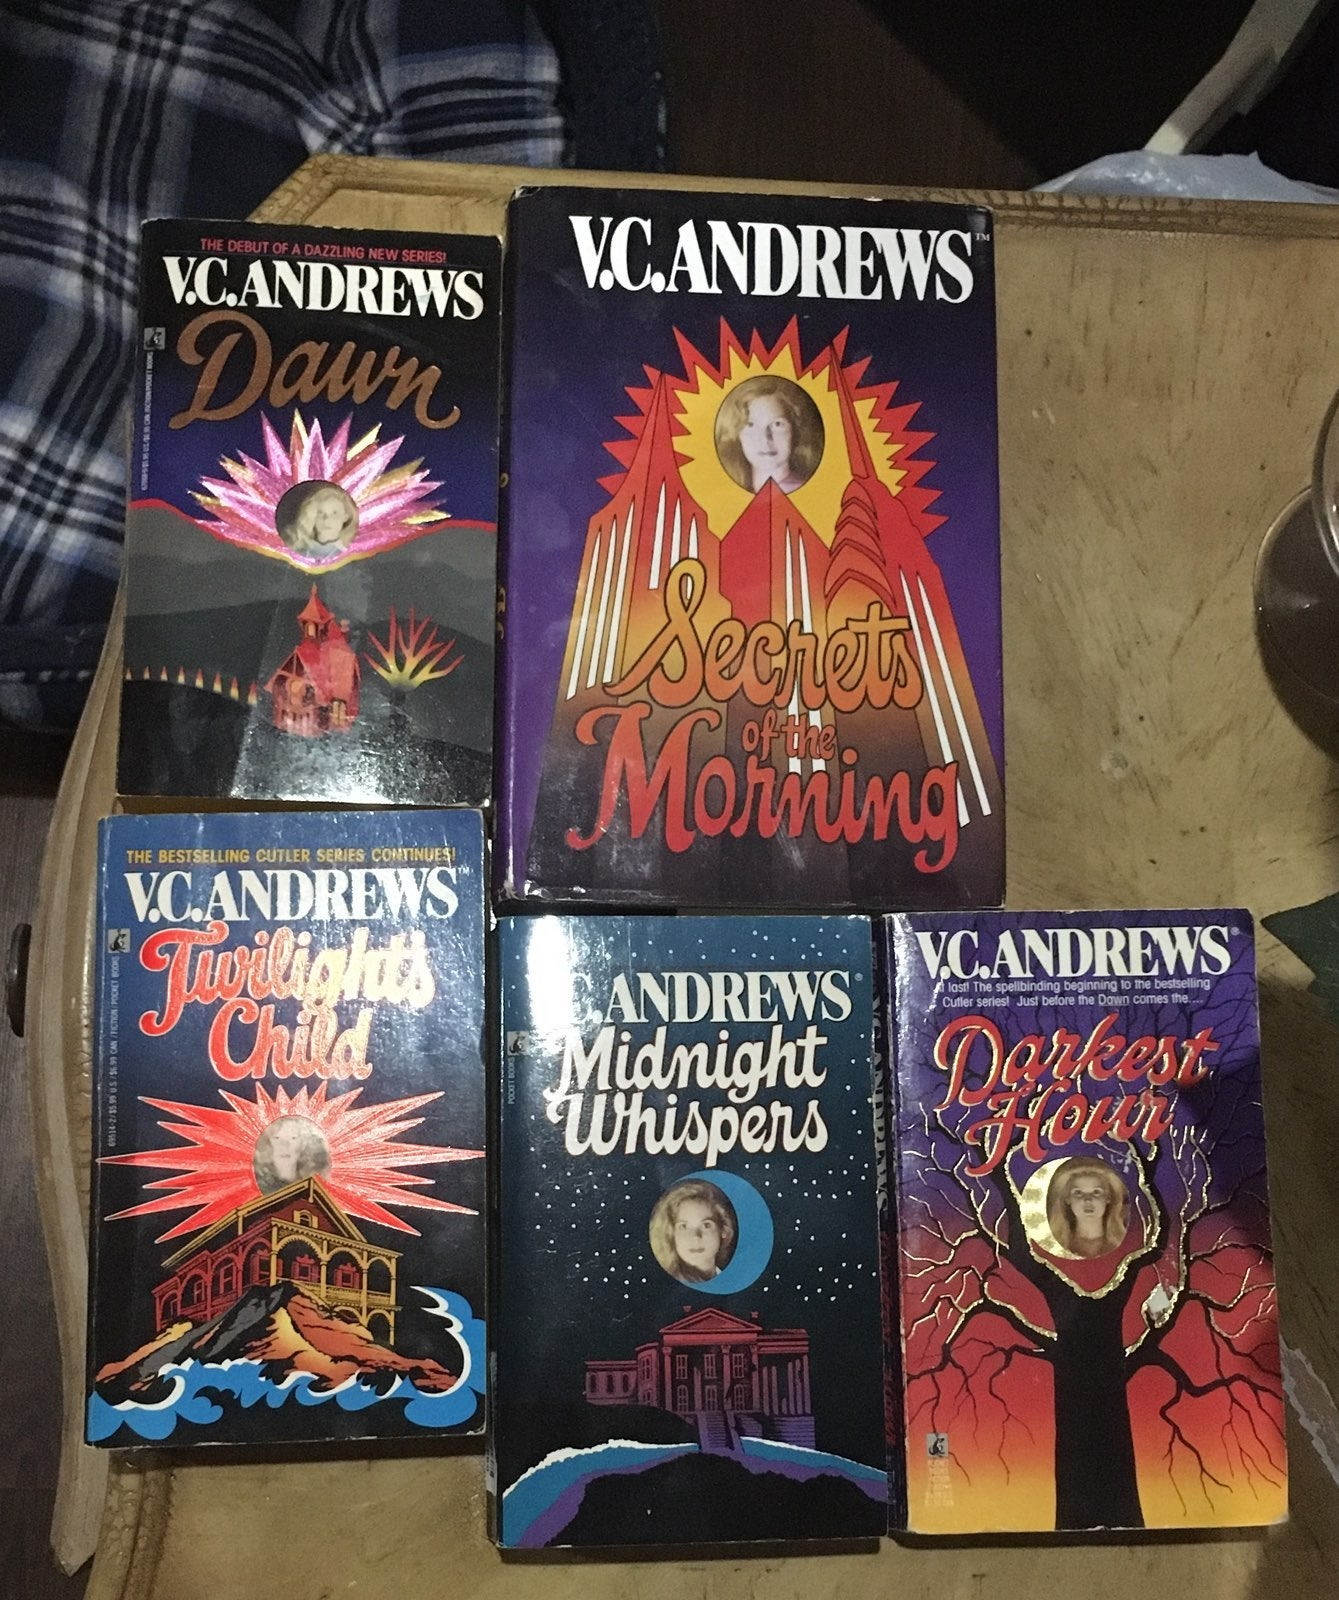 The Cutler Series by V.C. Andrews